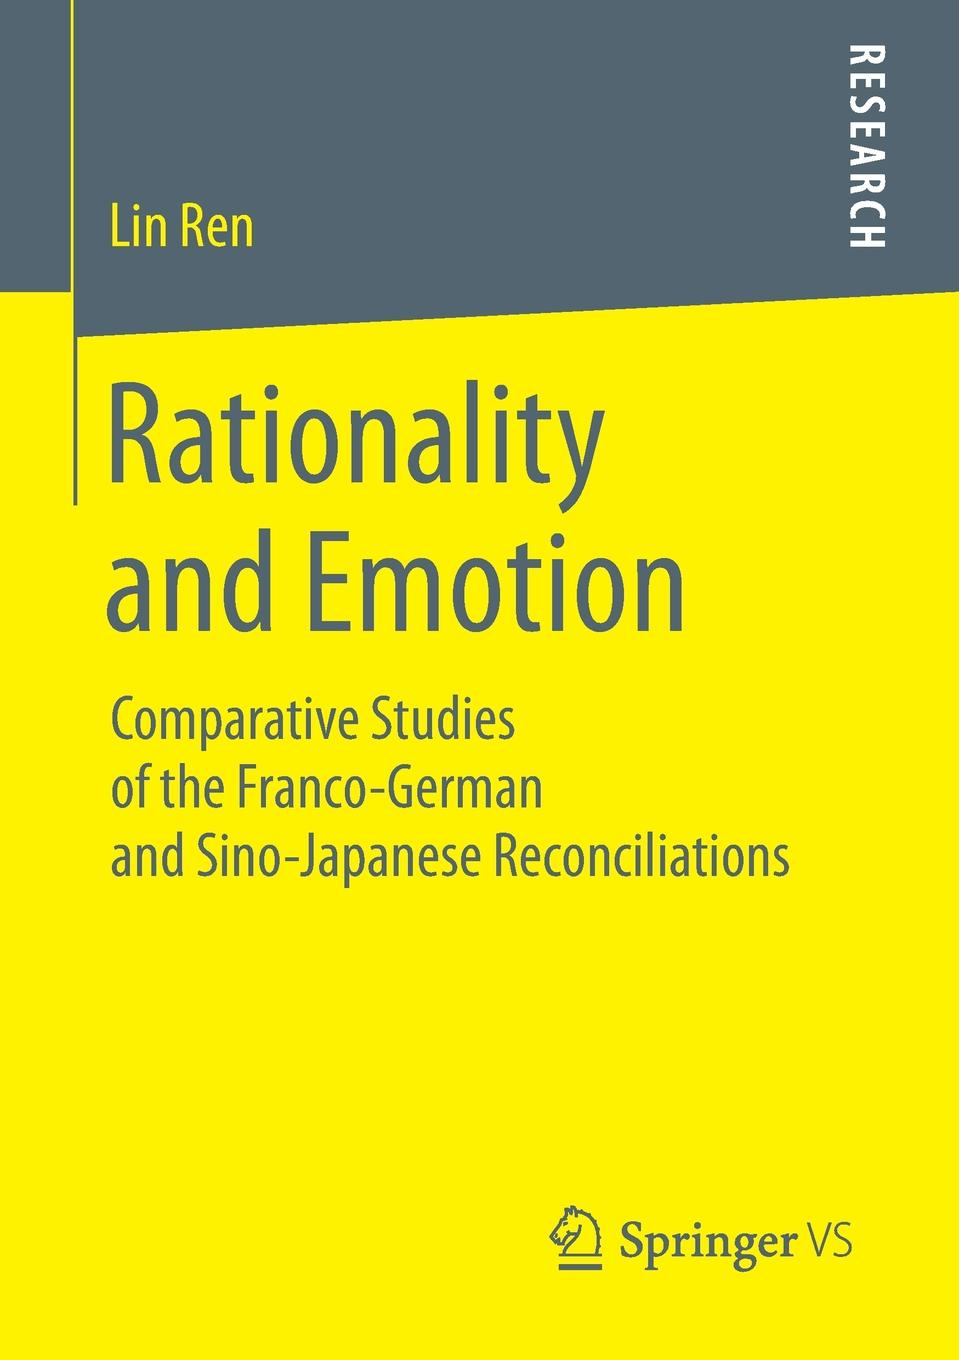 Lin Ren Rationality and Emotion. Comparative Studies of the Franco-German and Sino-Japanese Reconciliations engrained engrained deep rooted